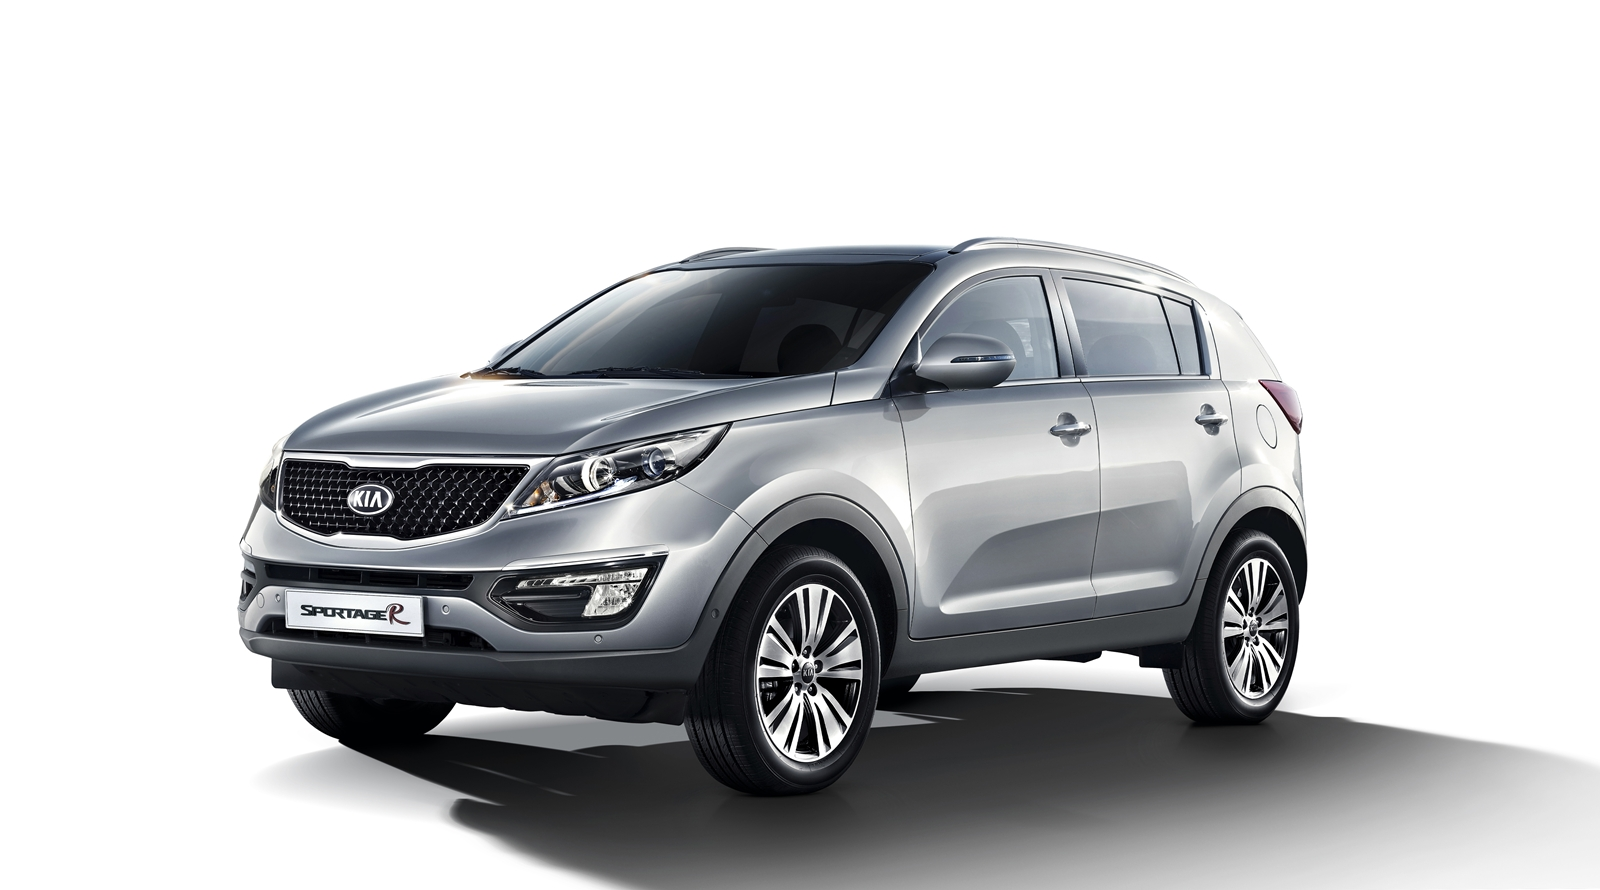 Global Sales of Kia Sportage Hits Milestone of Five Million